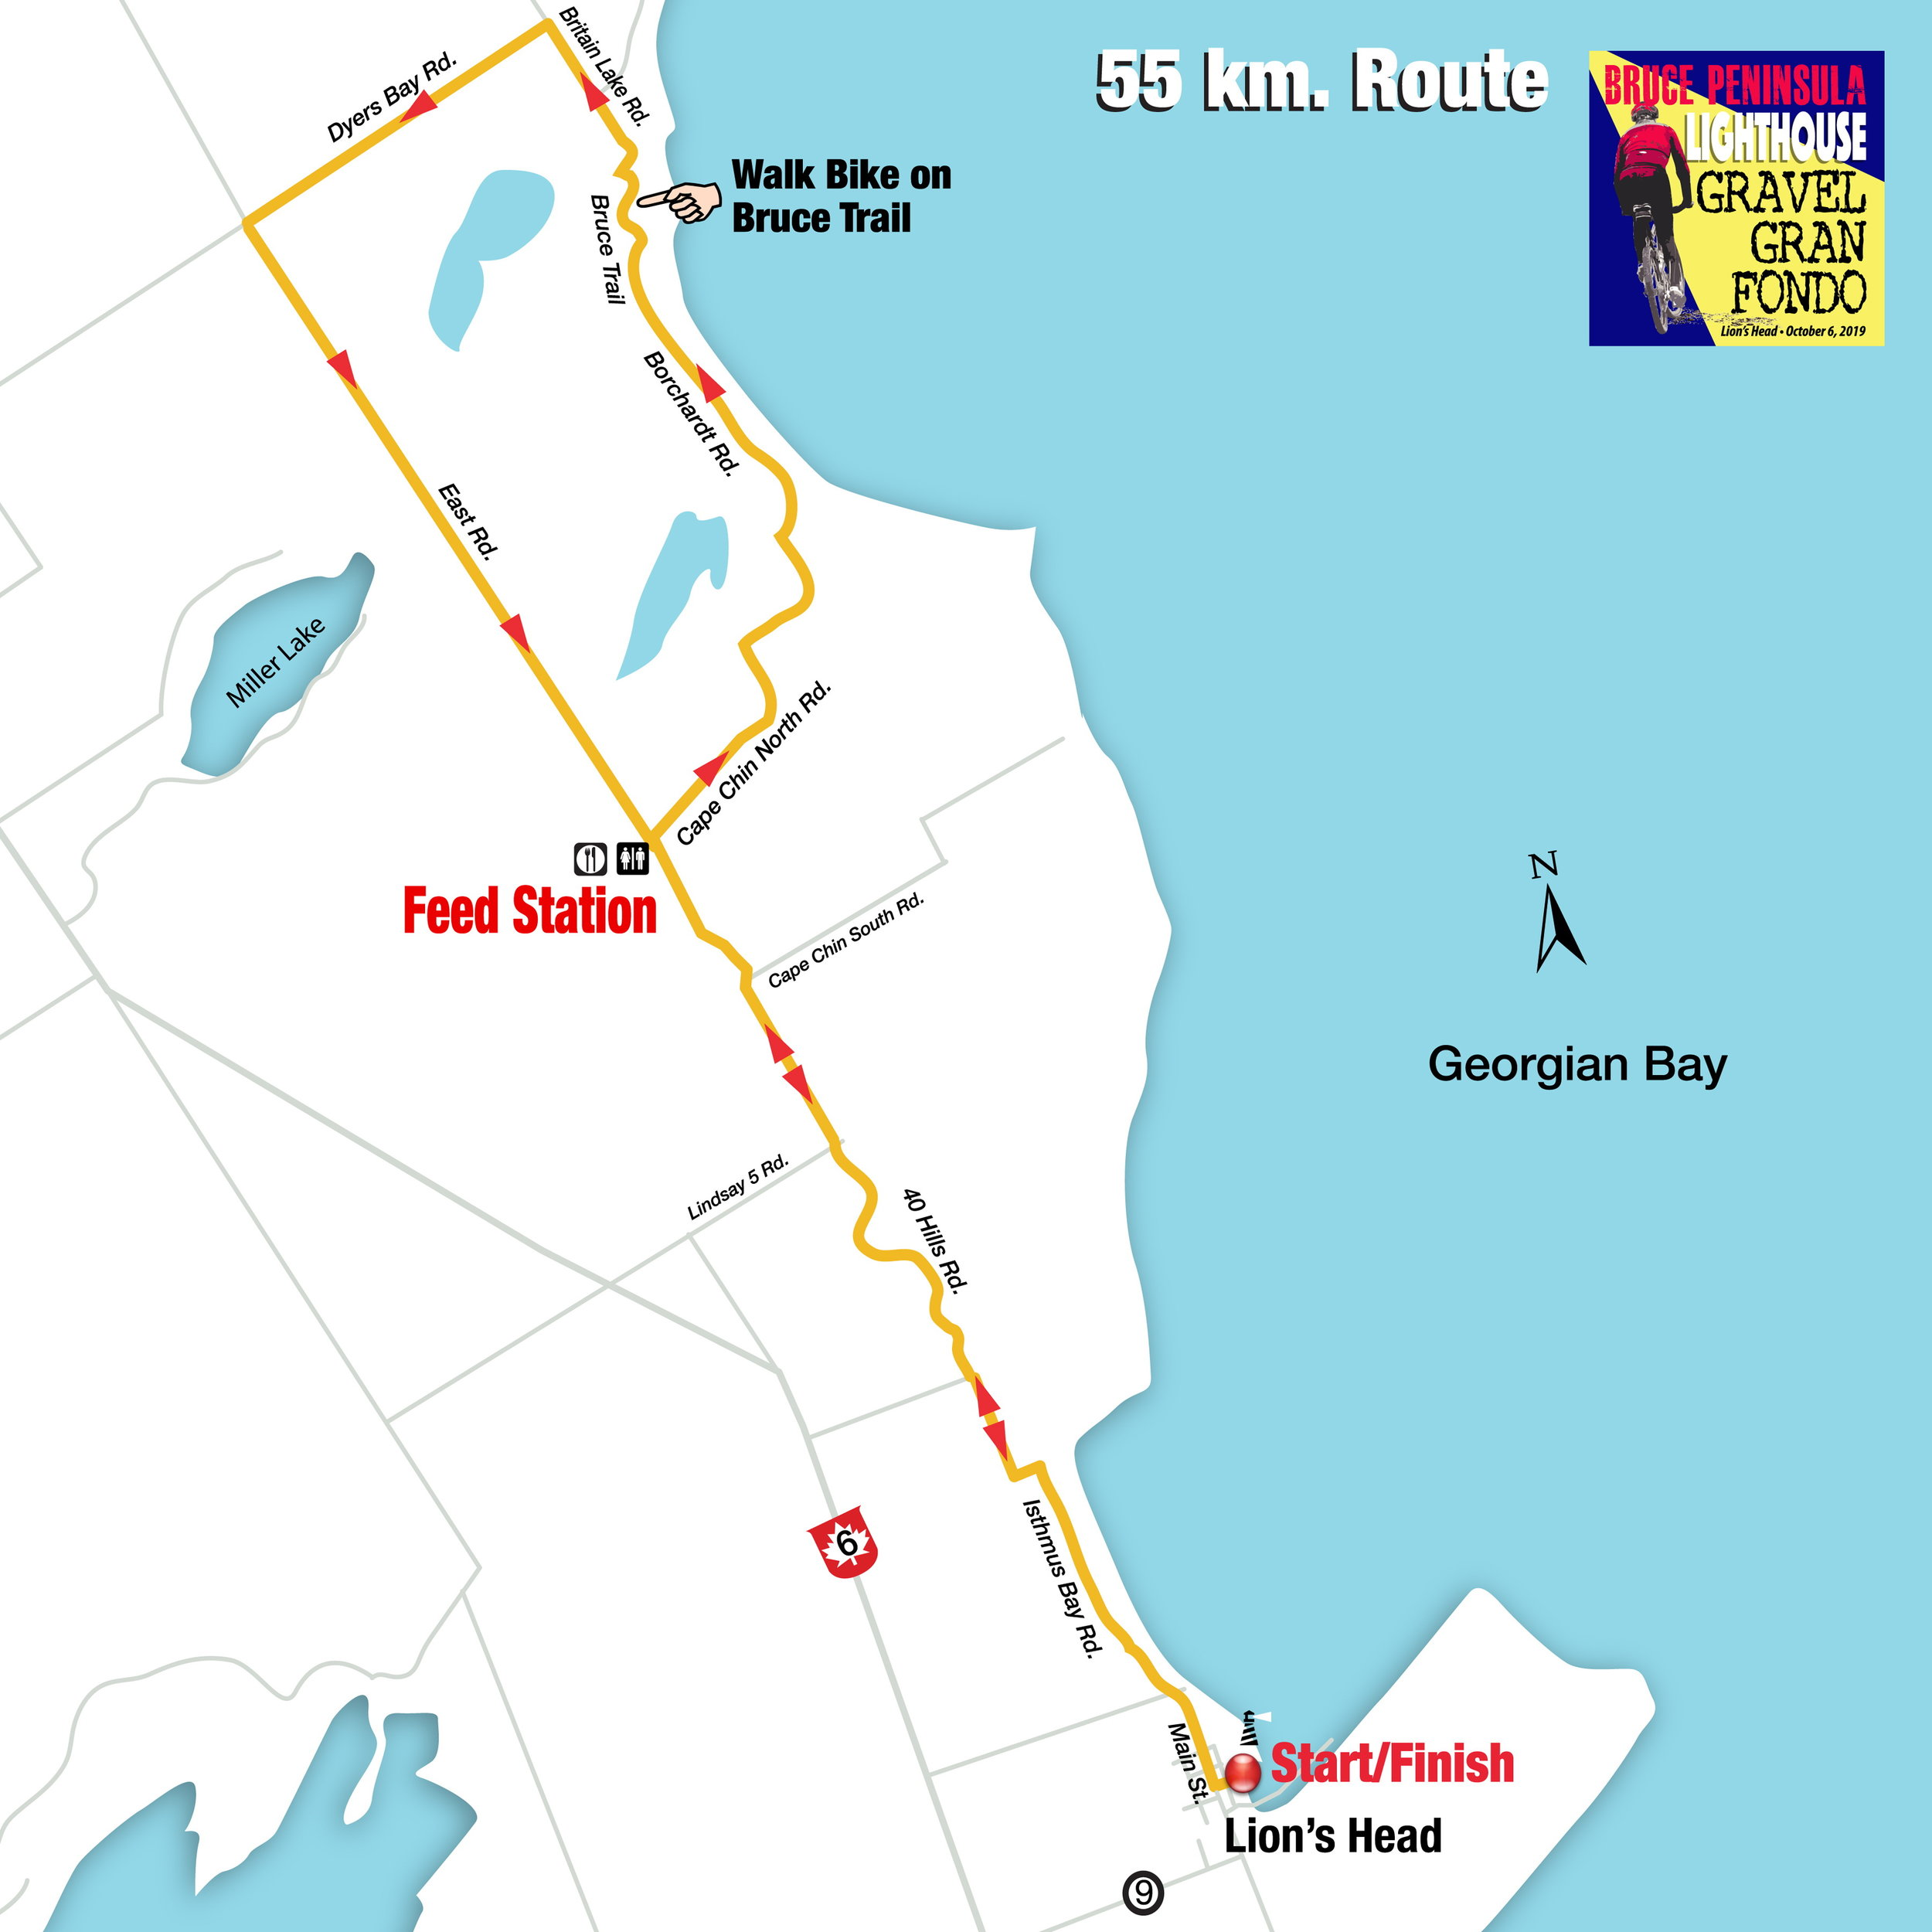 56 km route (click on on map to enlarge)